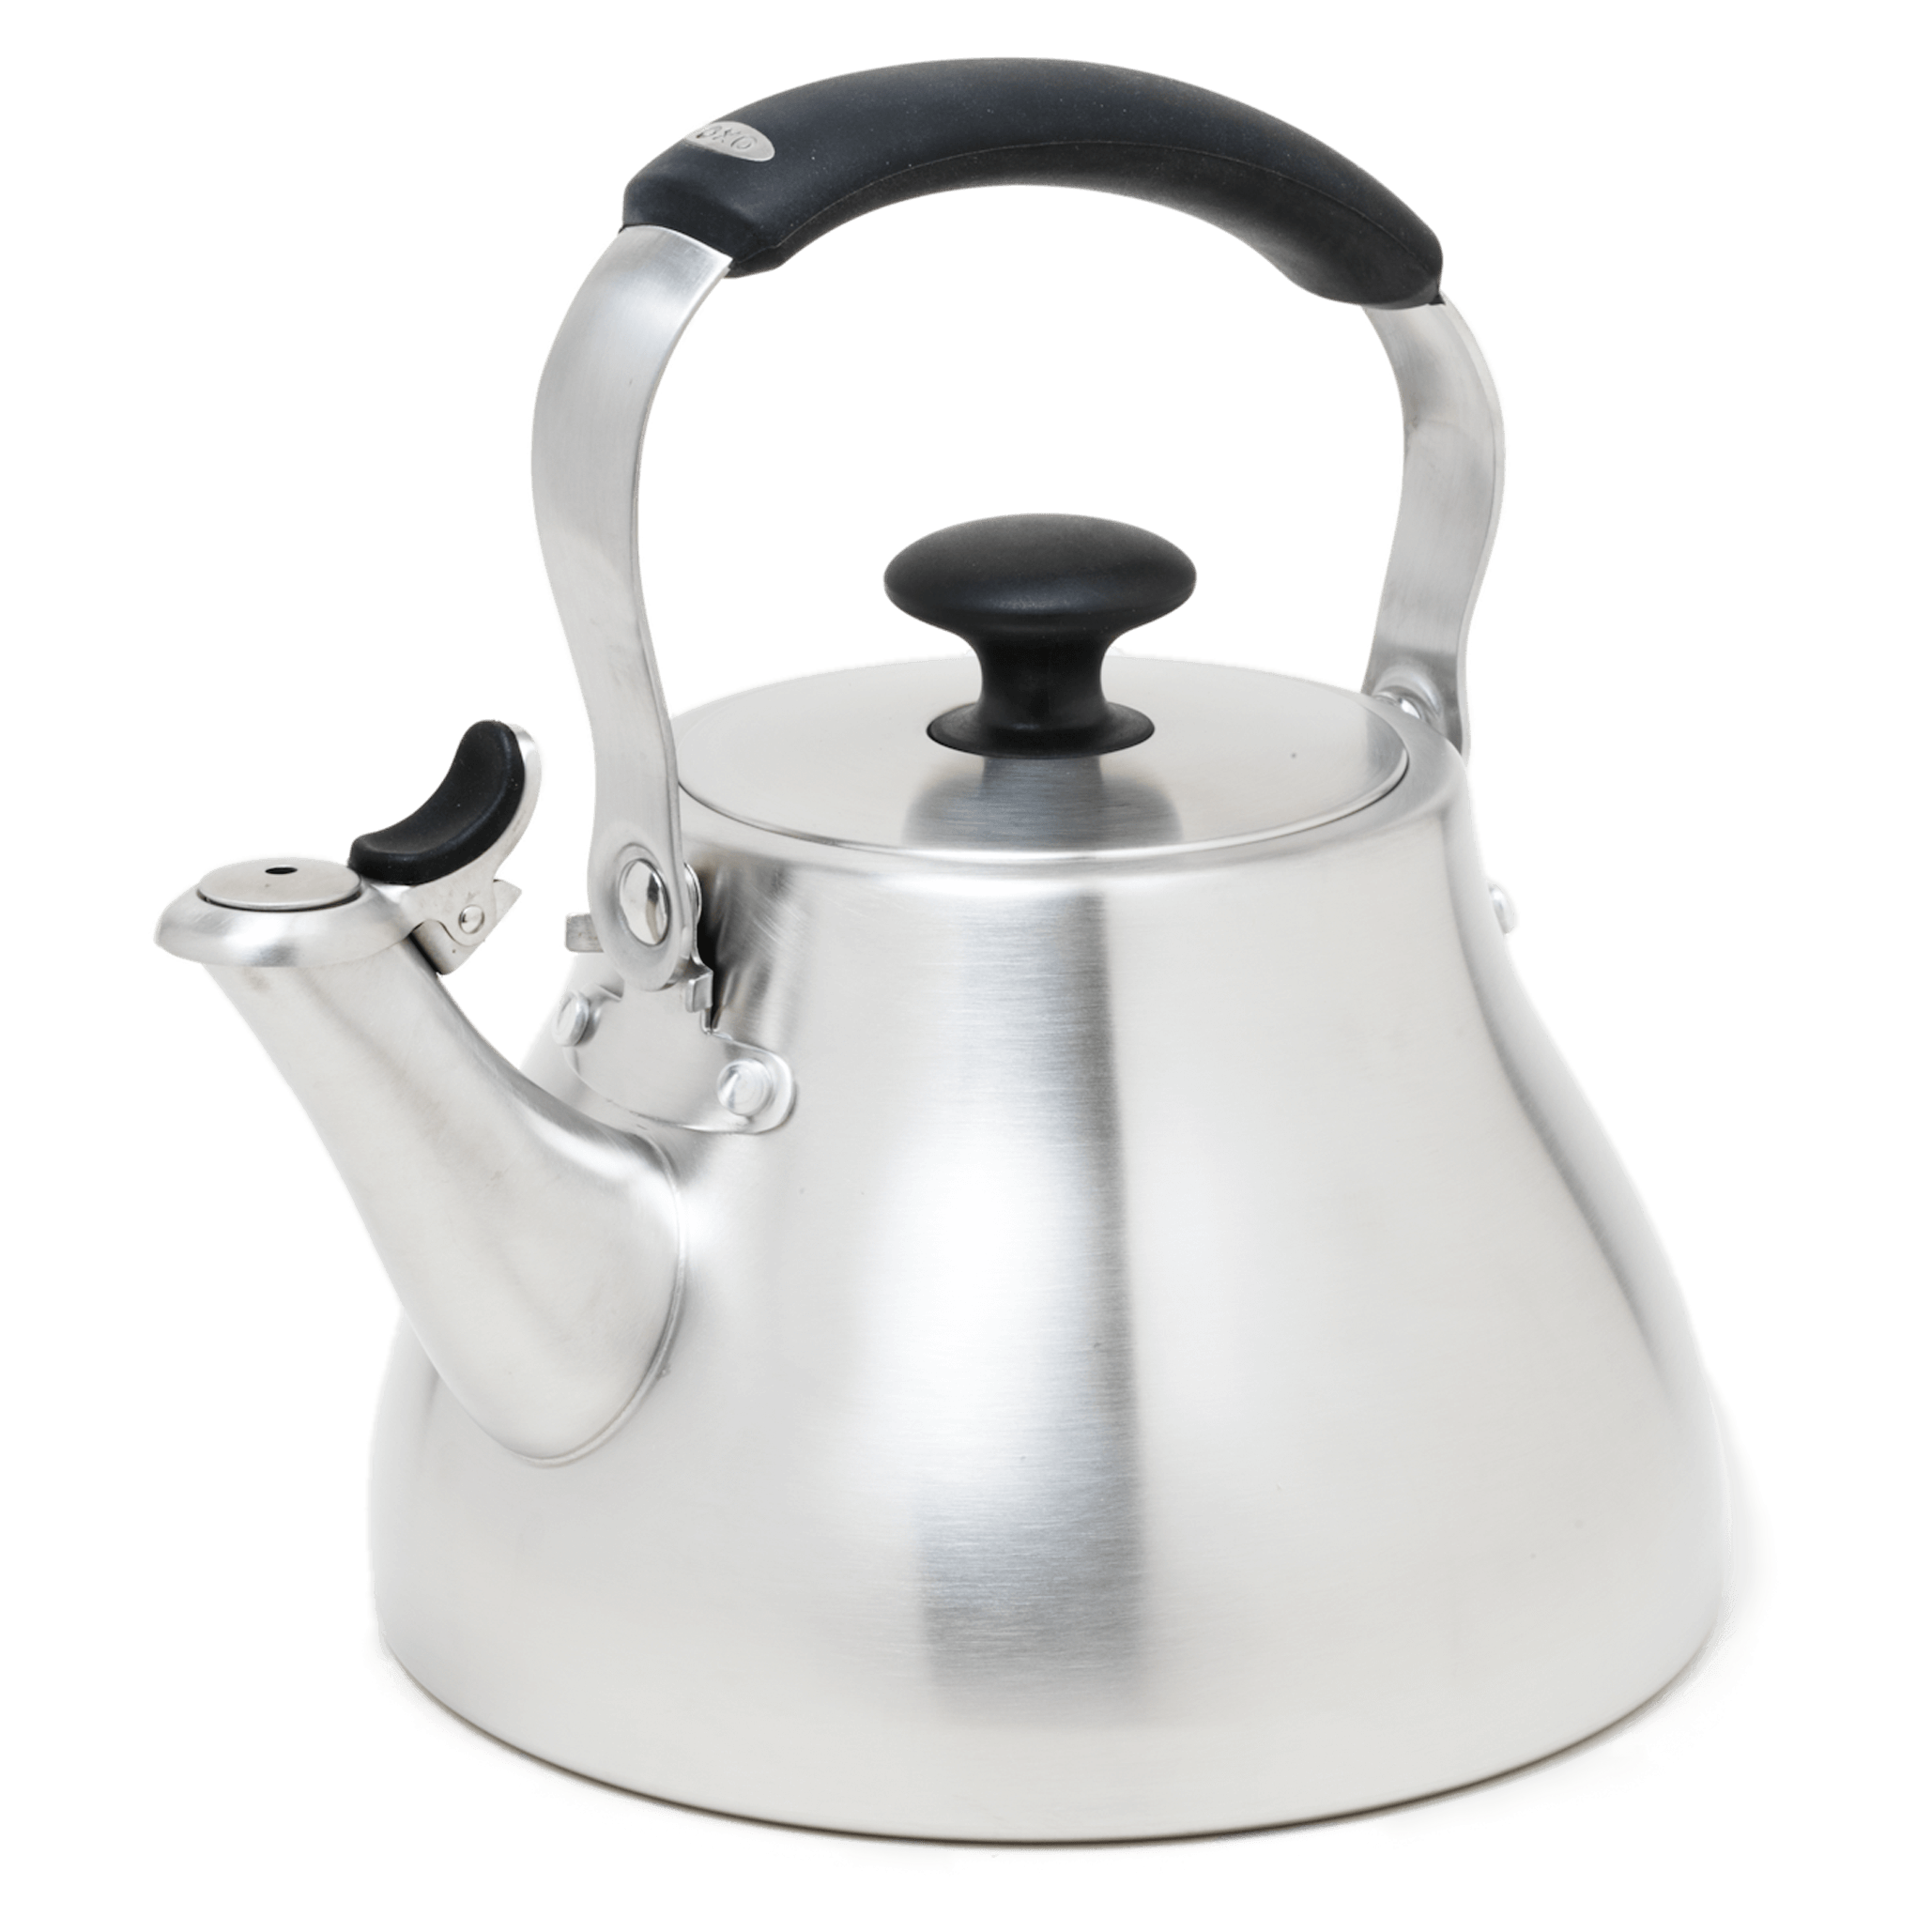 Teapot with steam png. The best stovetop kettles